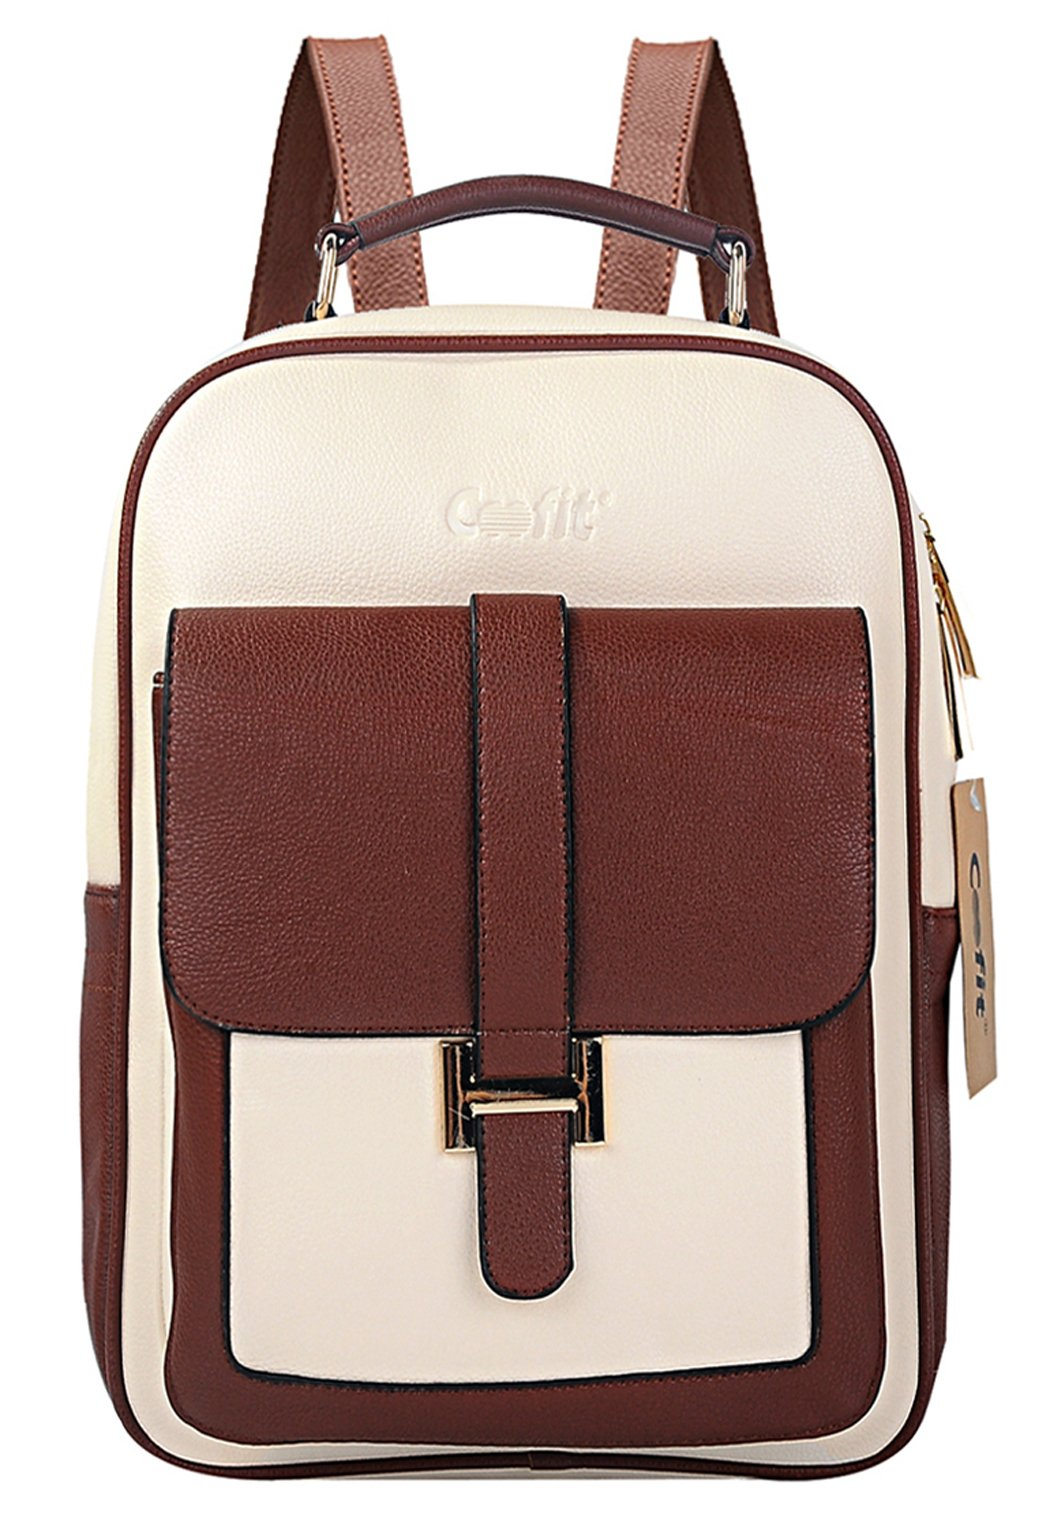 Coofit - Coofit Girl's Leather Backpack College